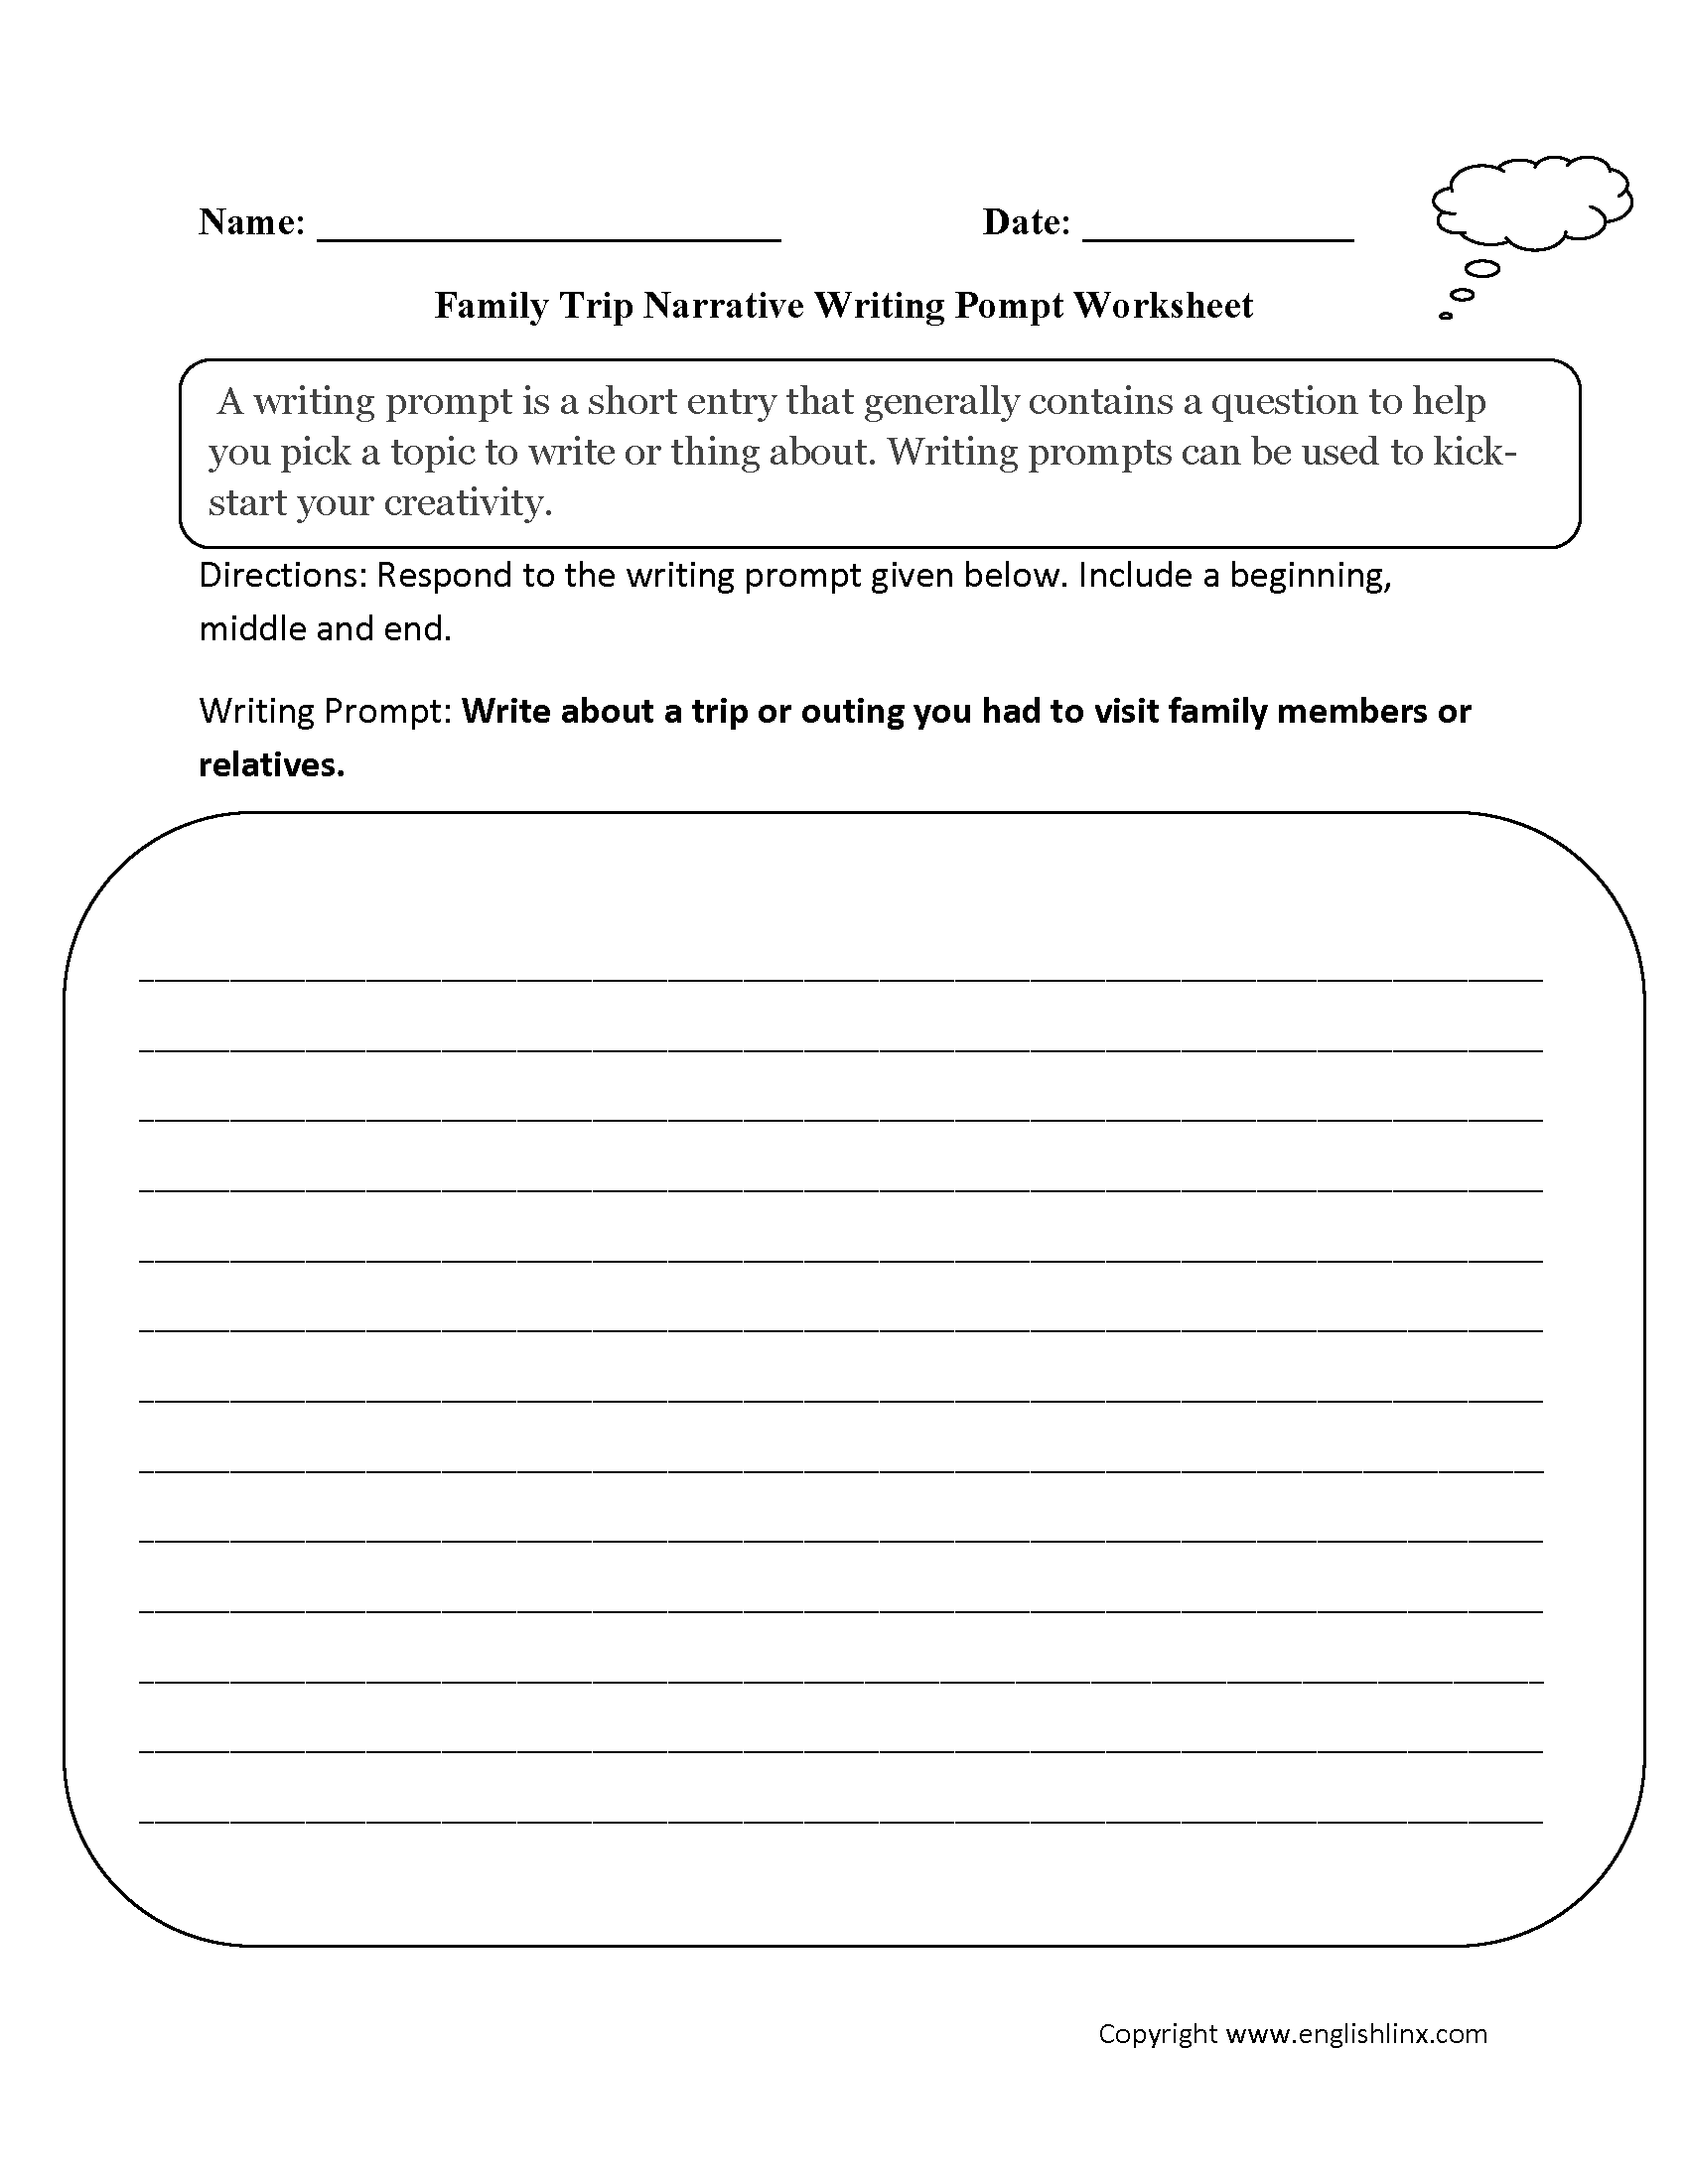 Printables 5th Grade Handwriting Worksheets narrative writing prompts for fifth grade prompt worksheet worksheets 5th prompts